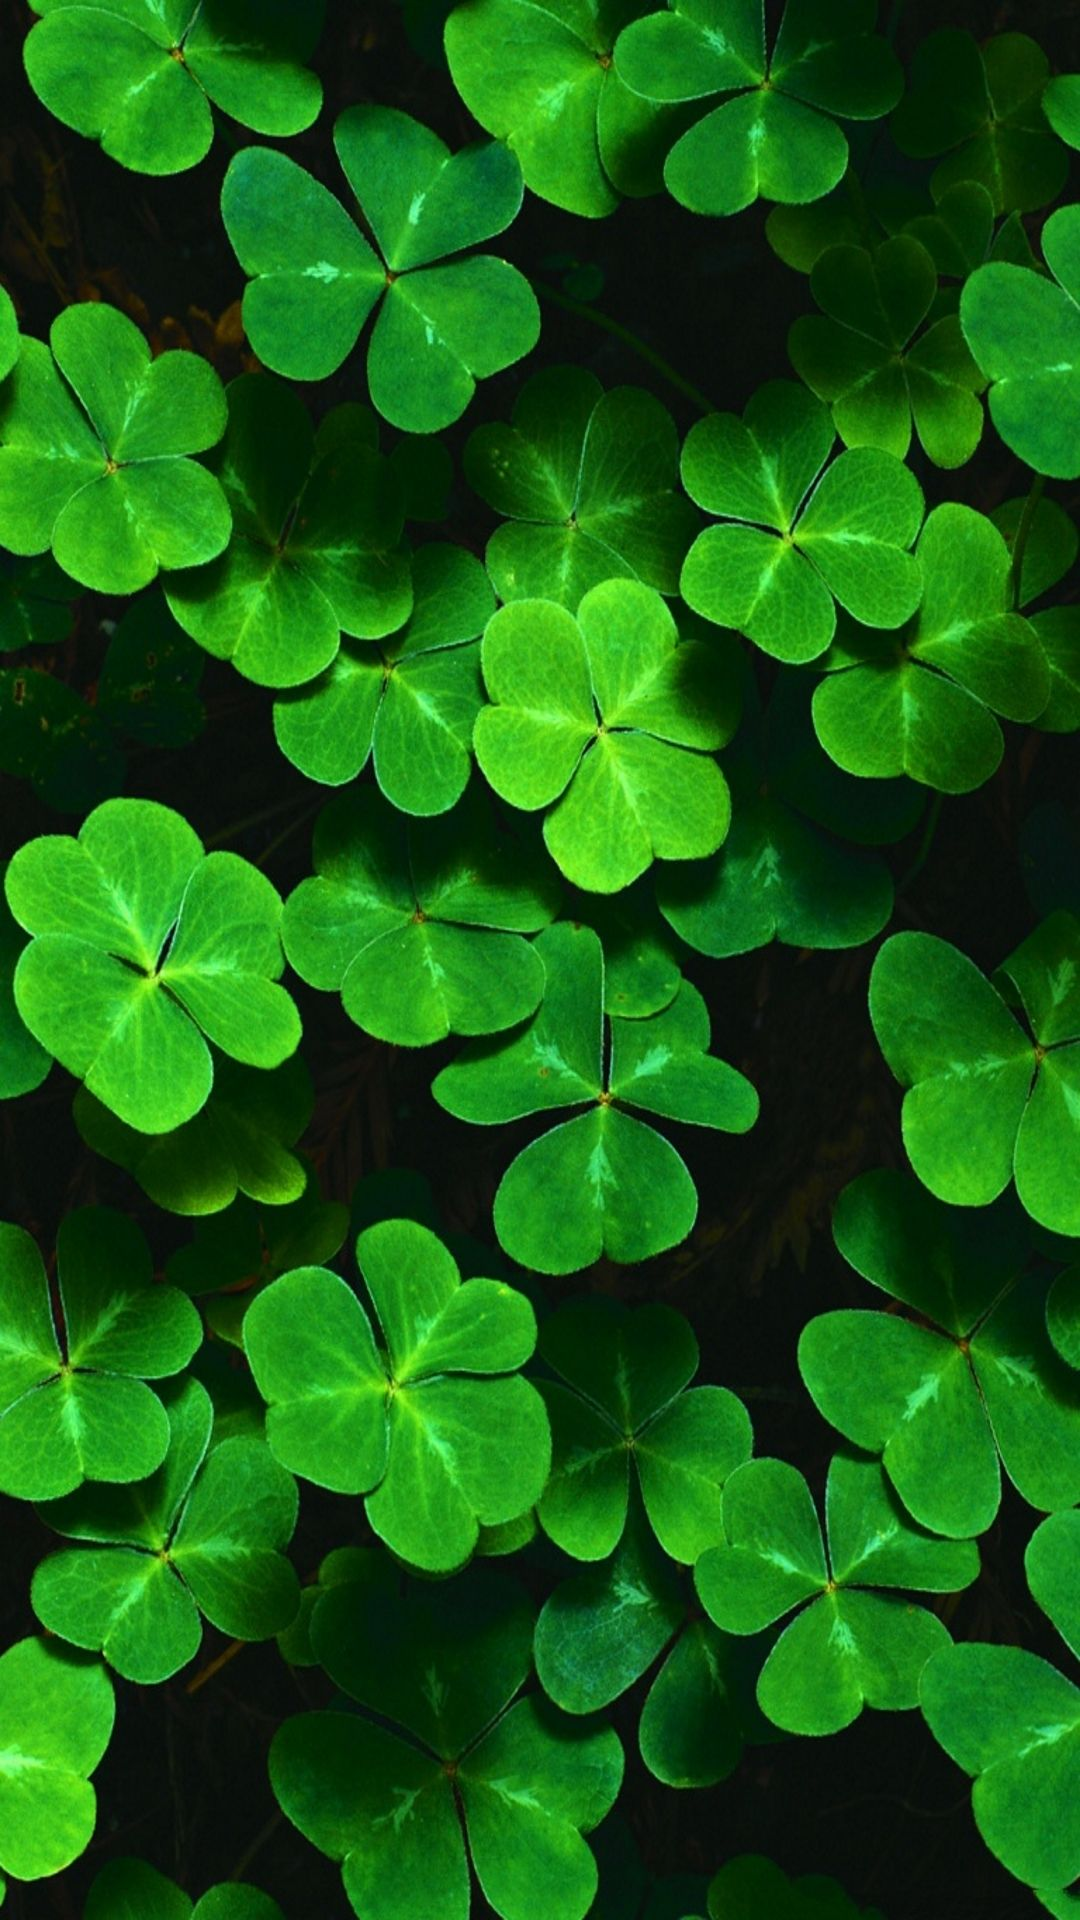 Cellphone Background Wallpaper For St Patricks Day